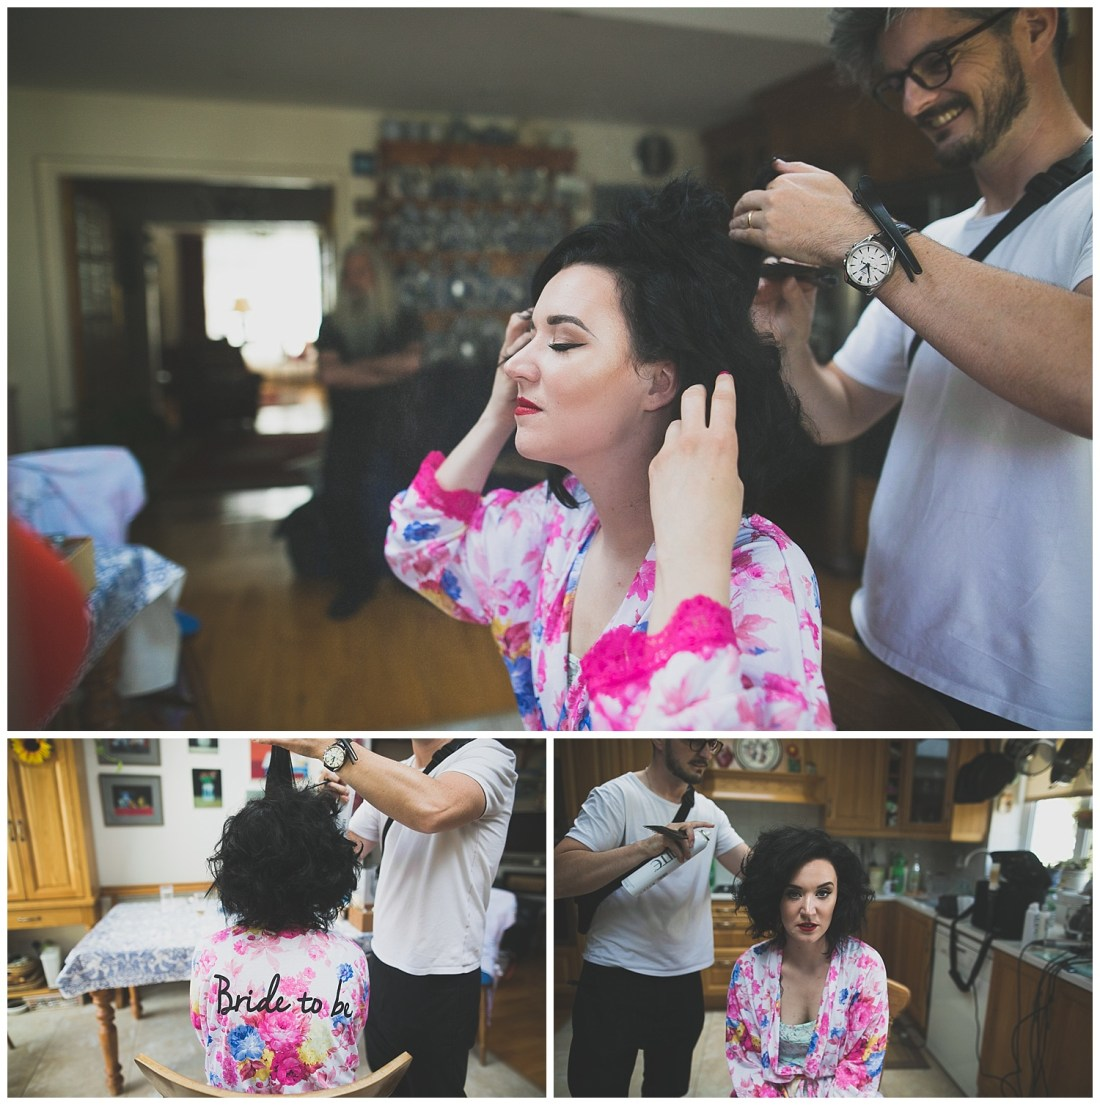 Bride gets short black hair styled in super voluminous glam style - Simon Reilly Hairdressing